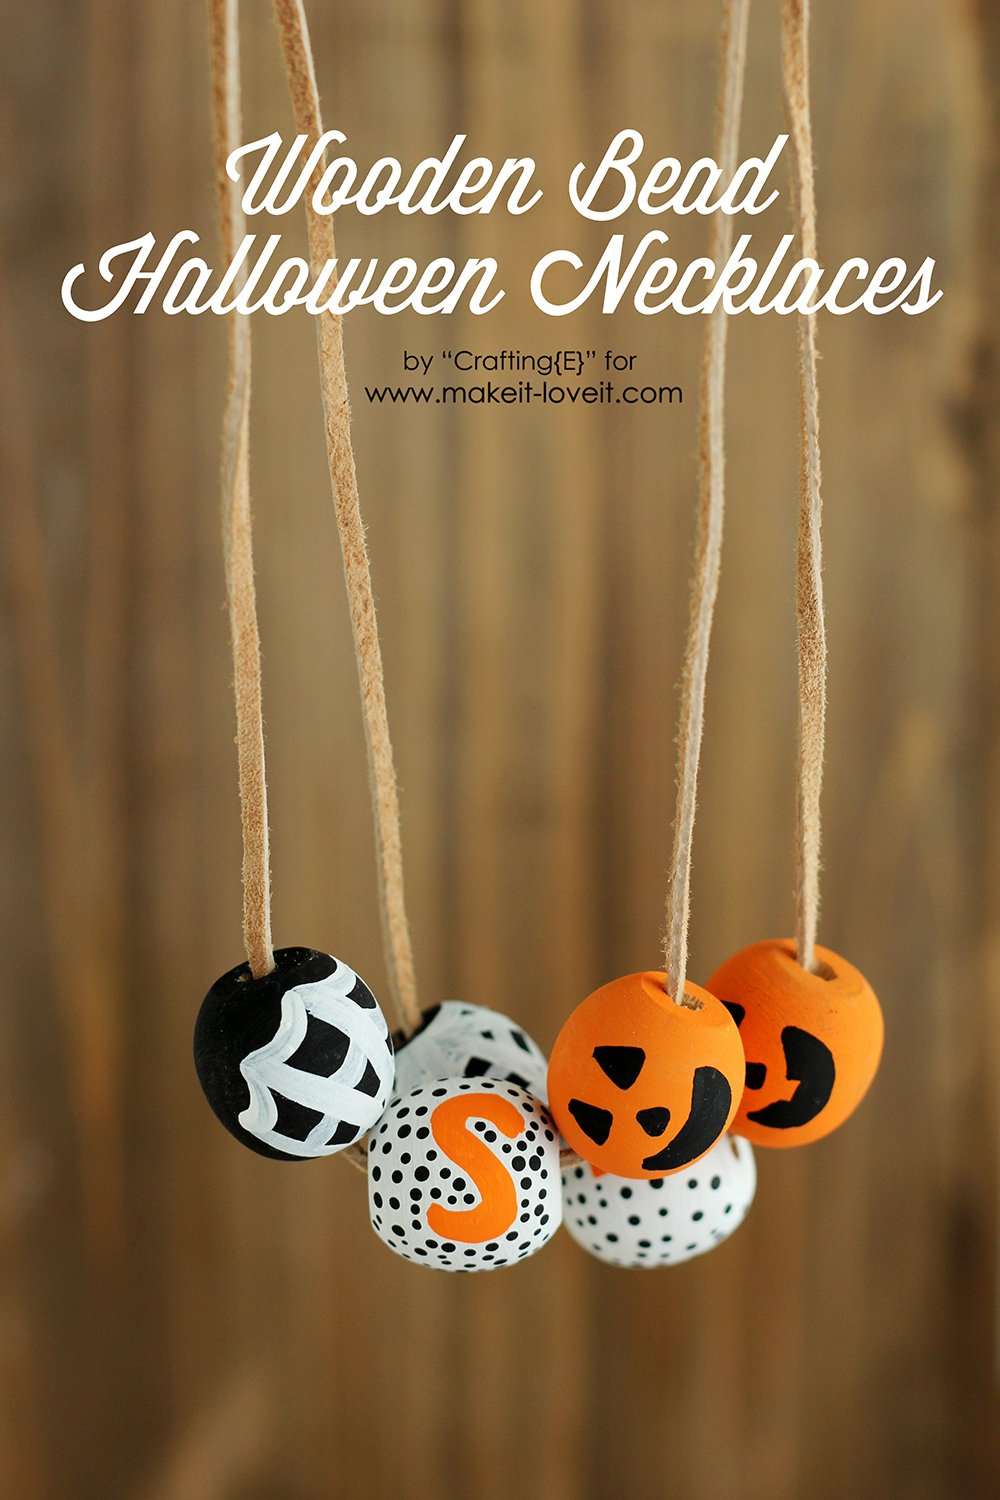 DIY Wooden Bead Halloween Necklaces